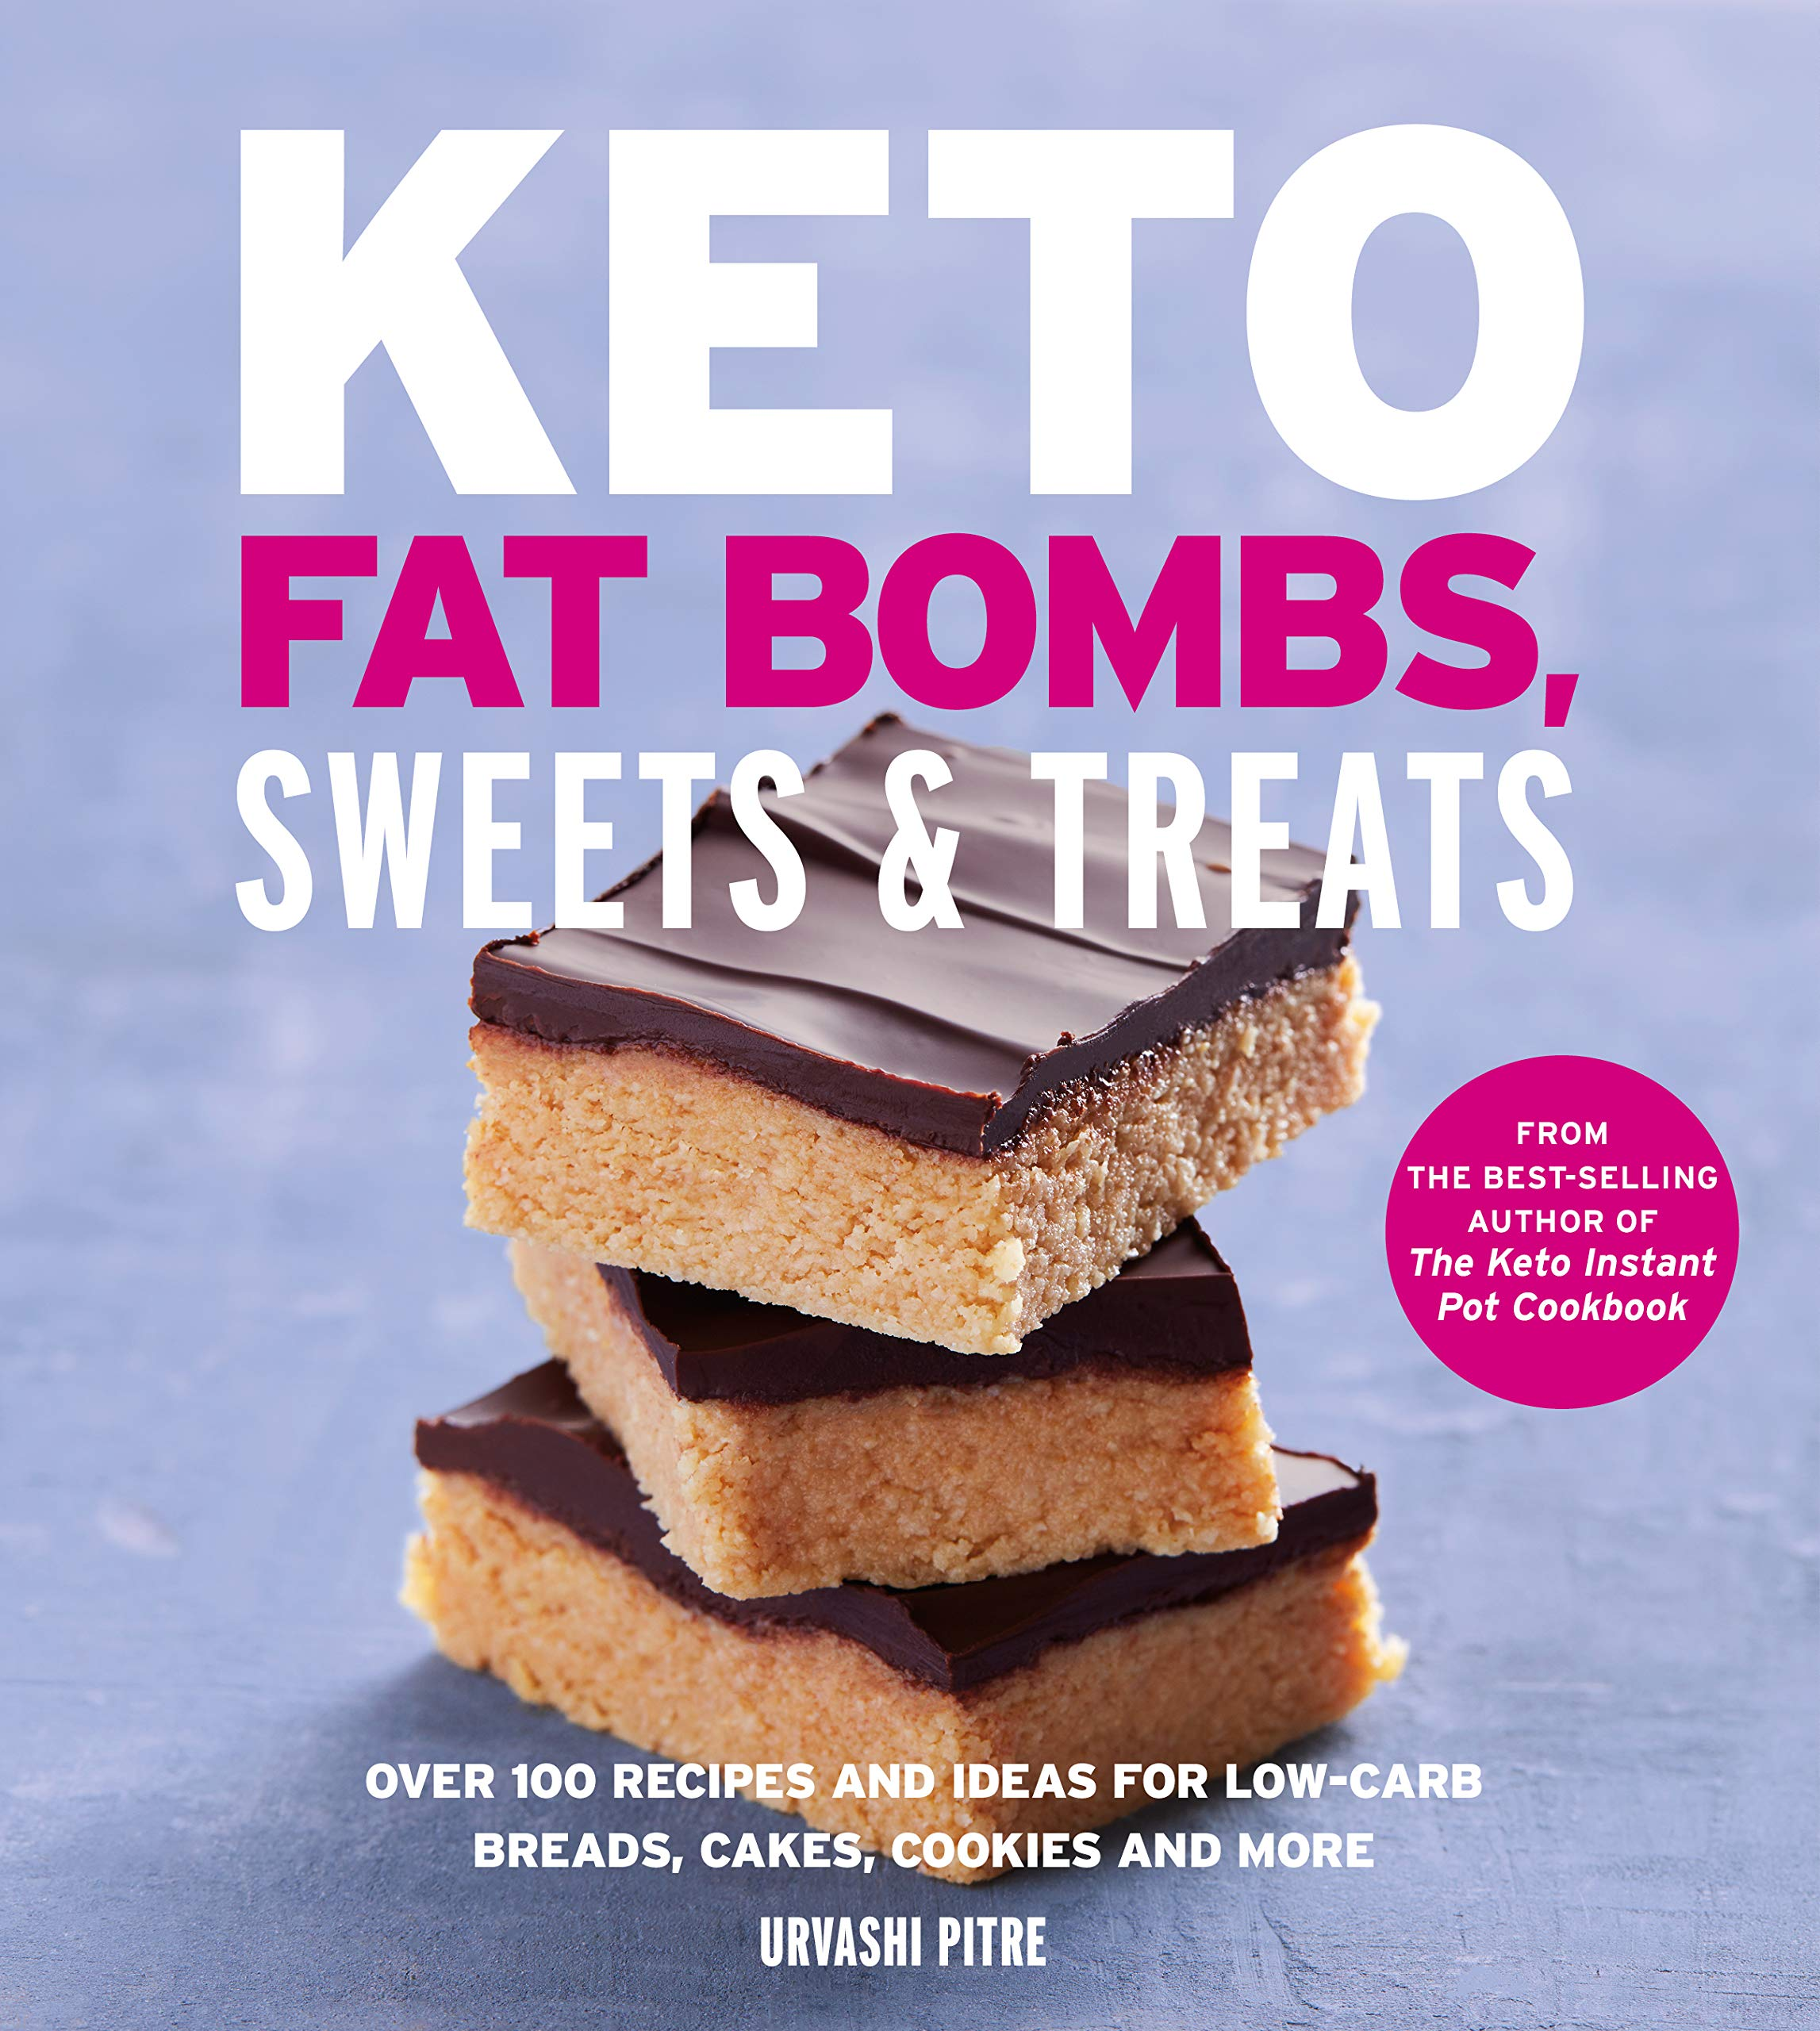 Cheap Keto-Friendly Dessert Recipes Price Reduced